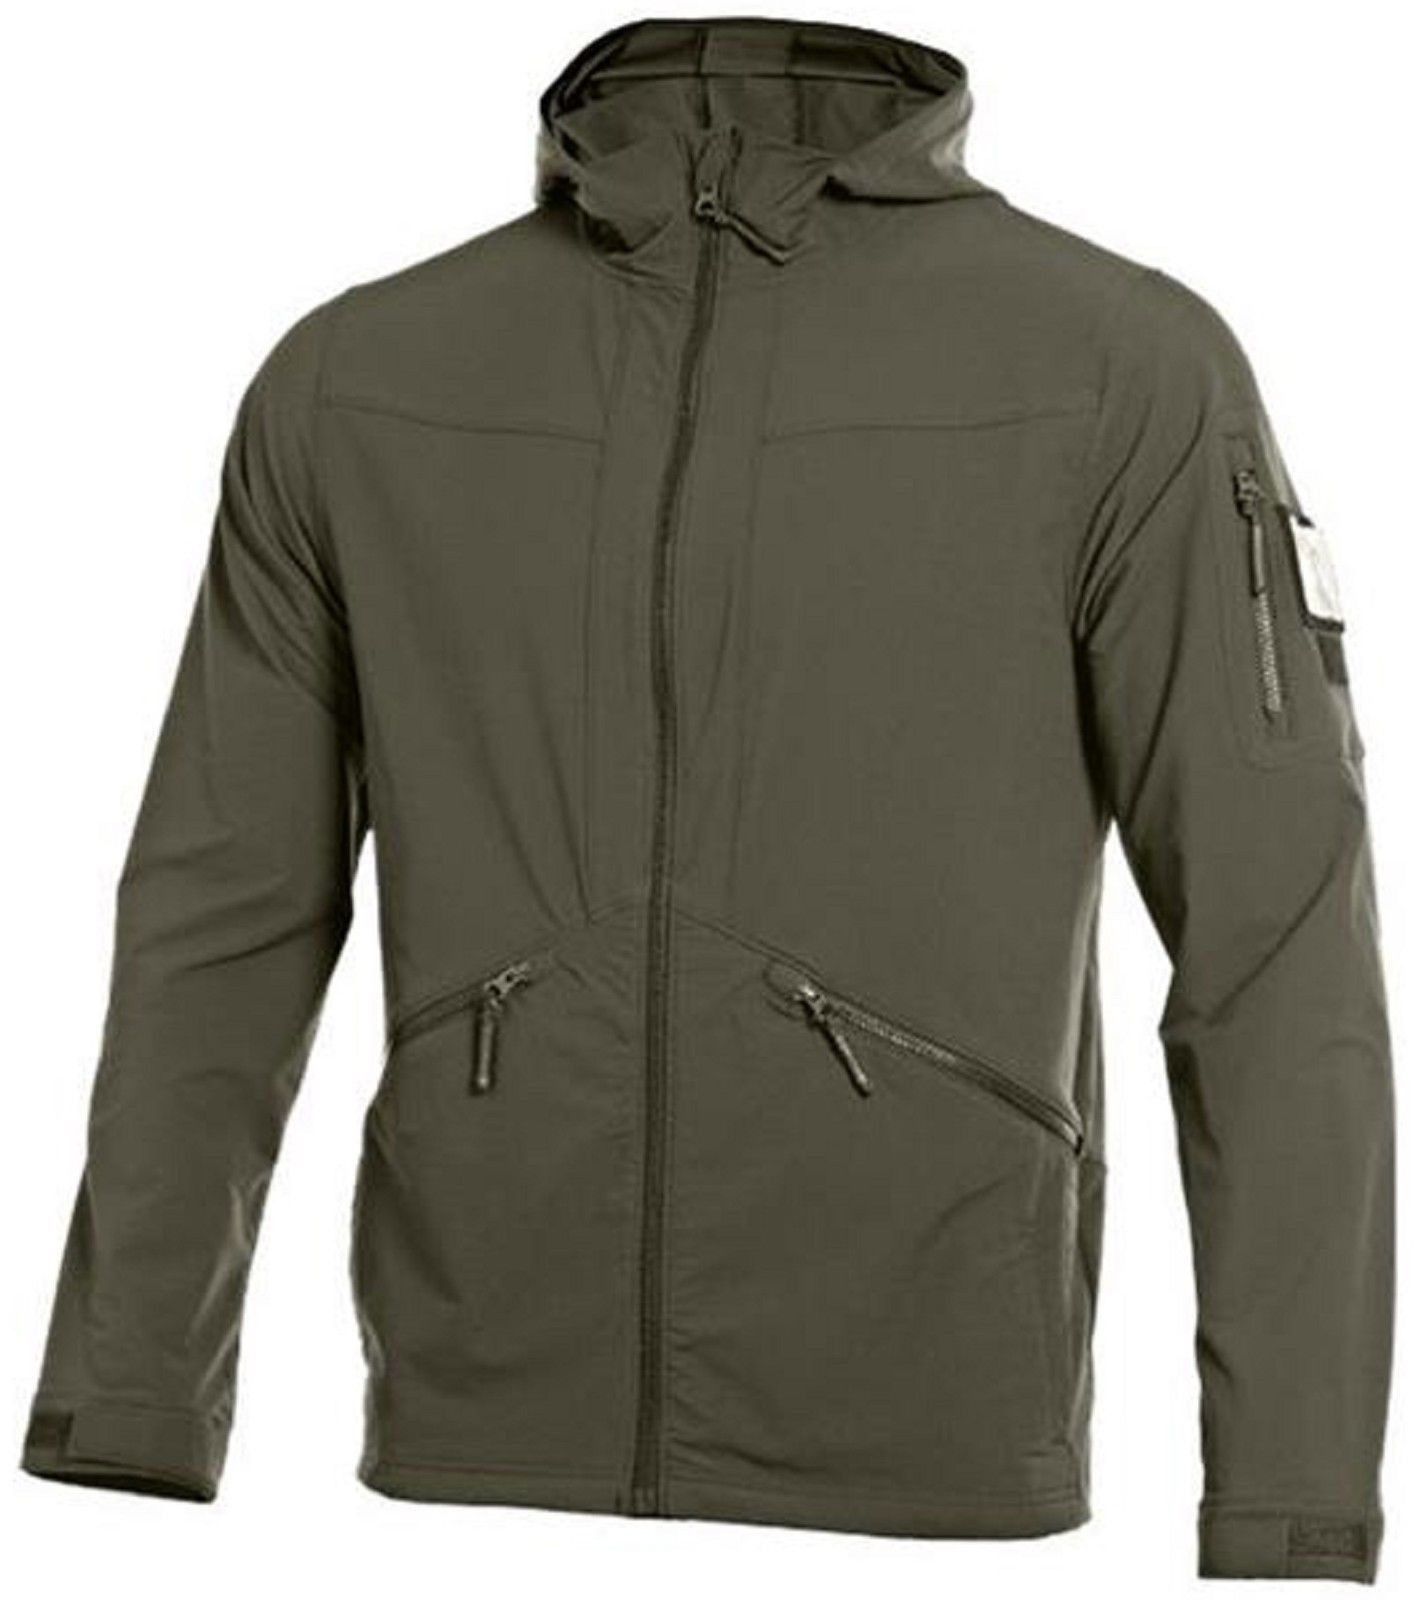 Under Armour Tactical Softshell Jacket 2.0 Mens